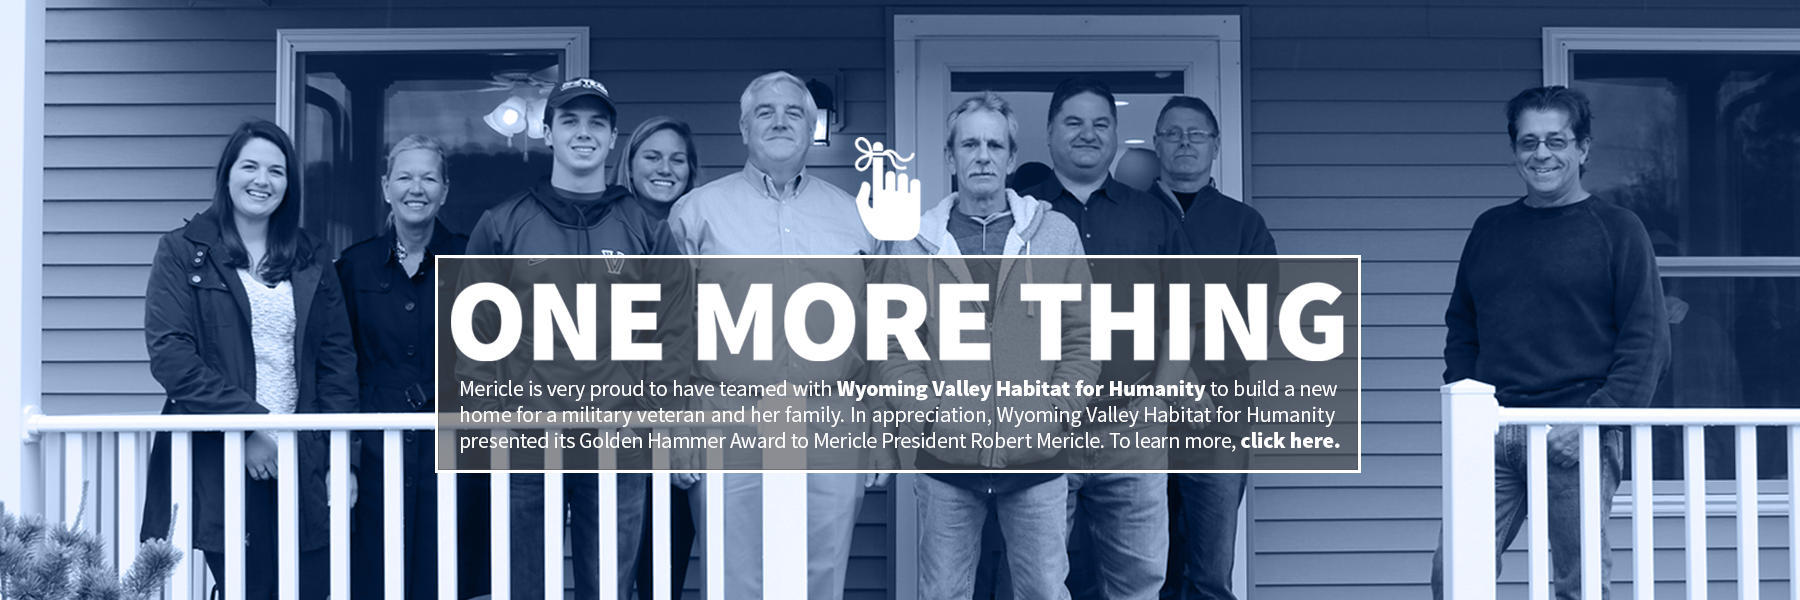 habitat-for-humanity-one-more-thing